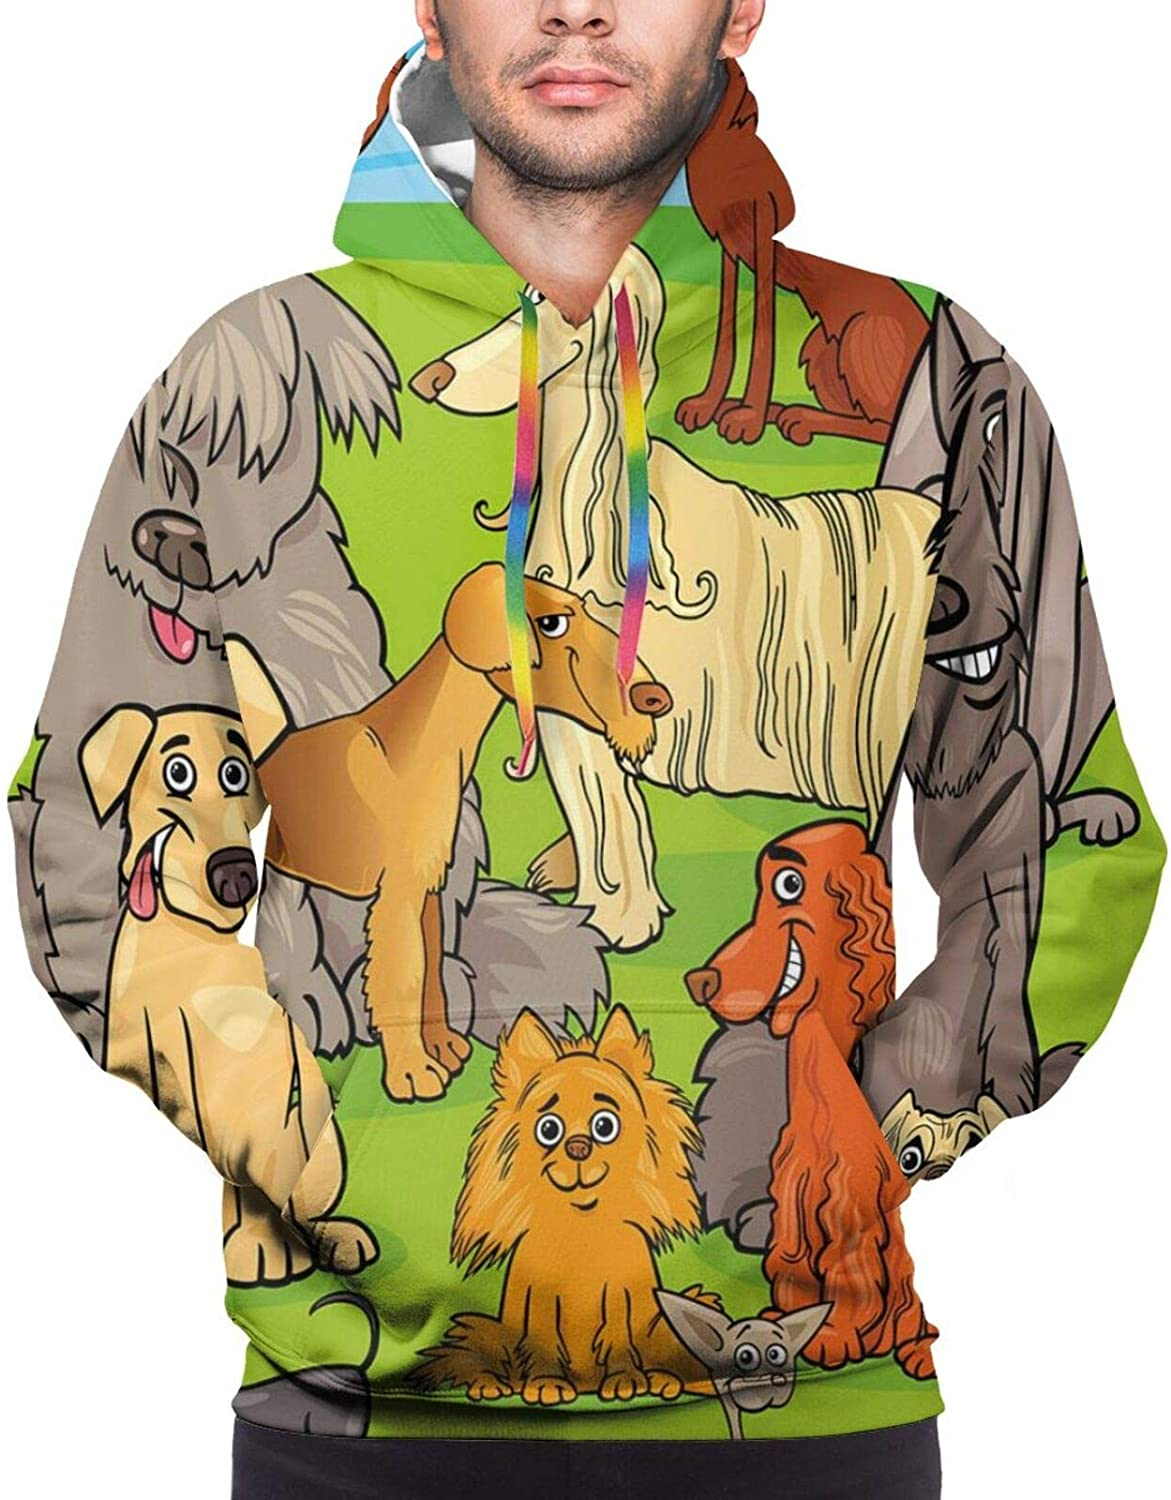 Men's Hoodies Sweatshirts,Funny Cute Nursery Themed Graphic with Happy Dog Characters On Grassy Land Blue Sky